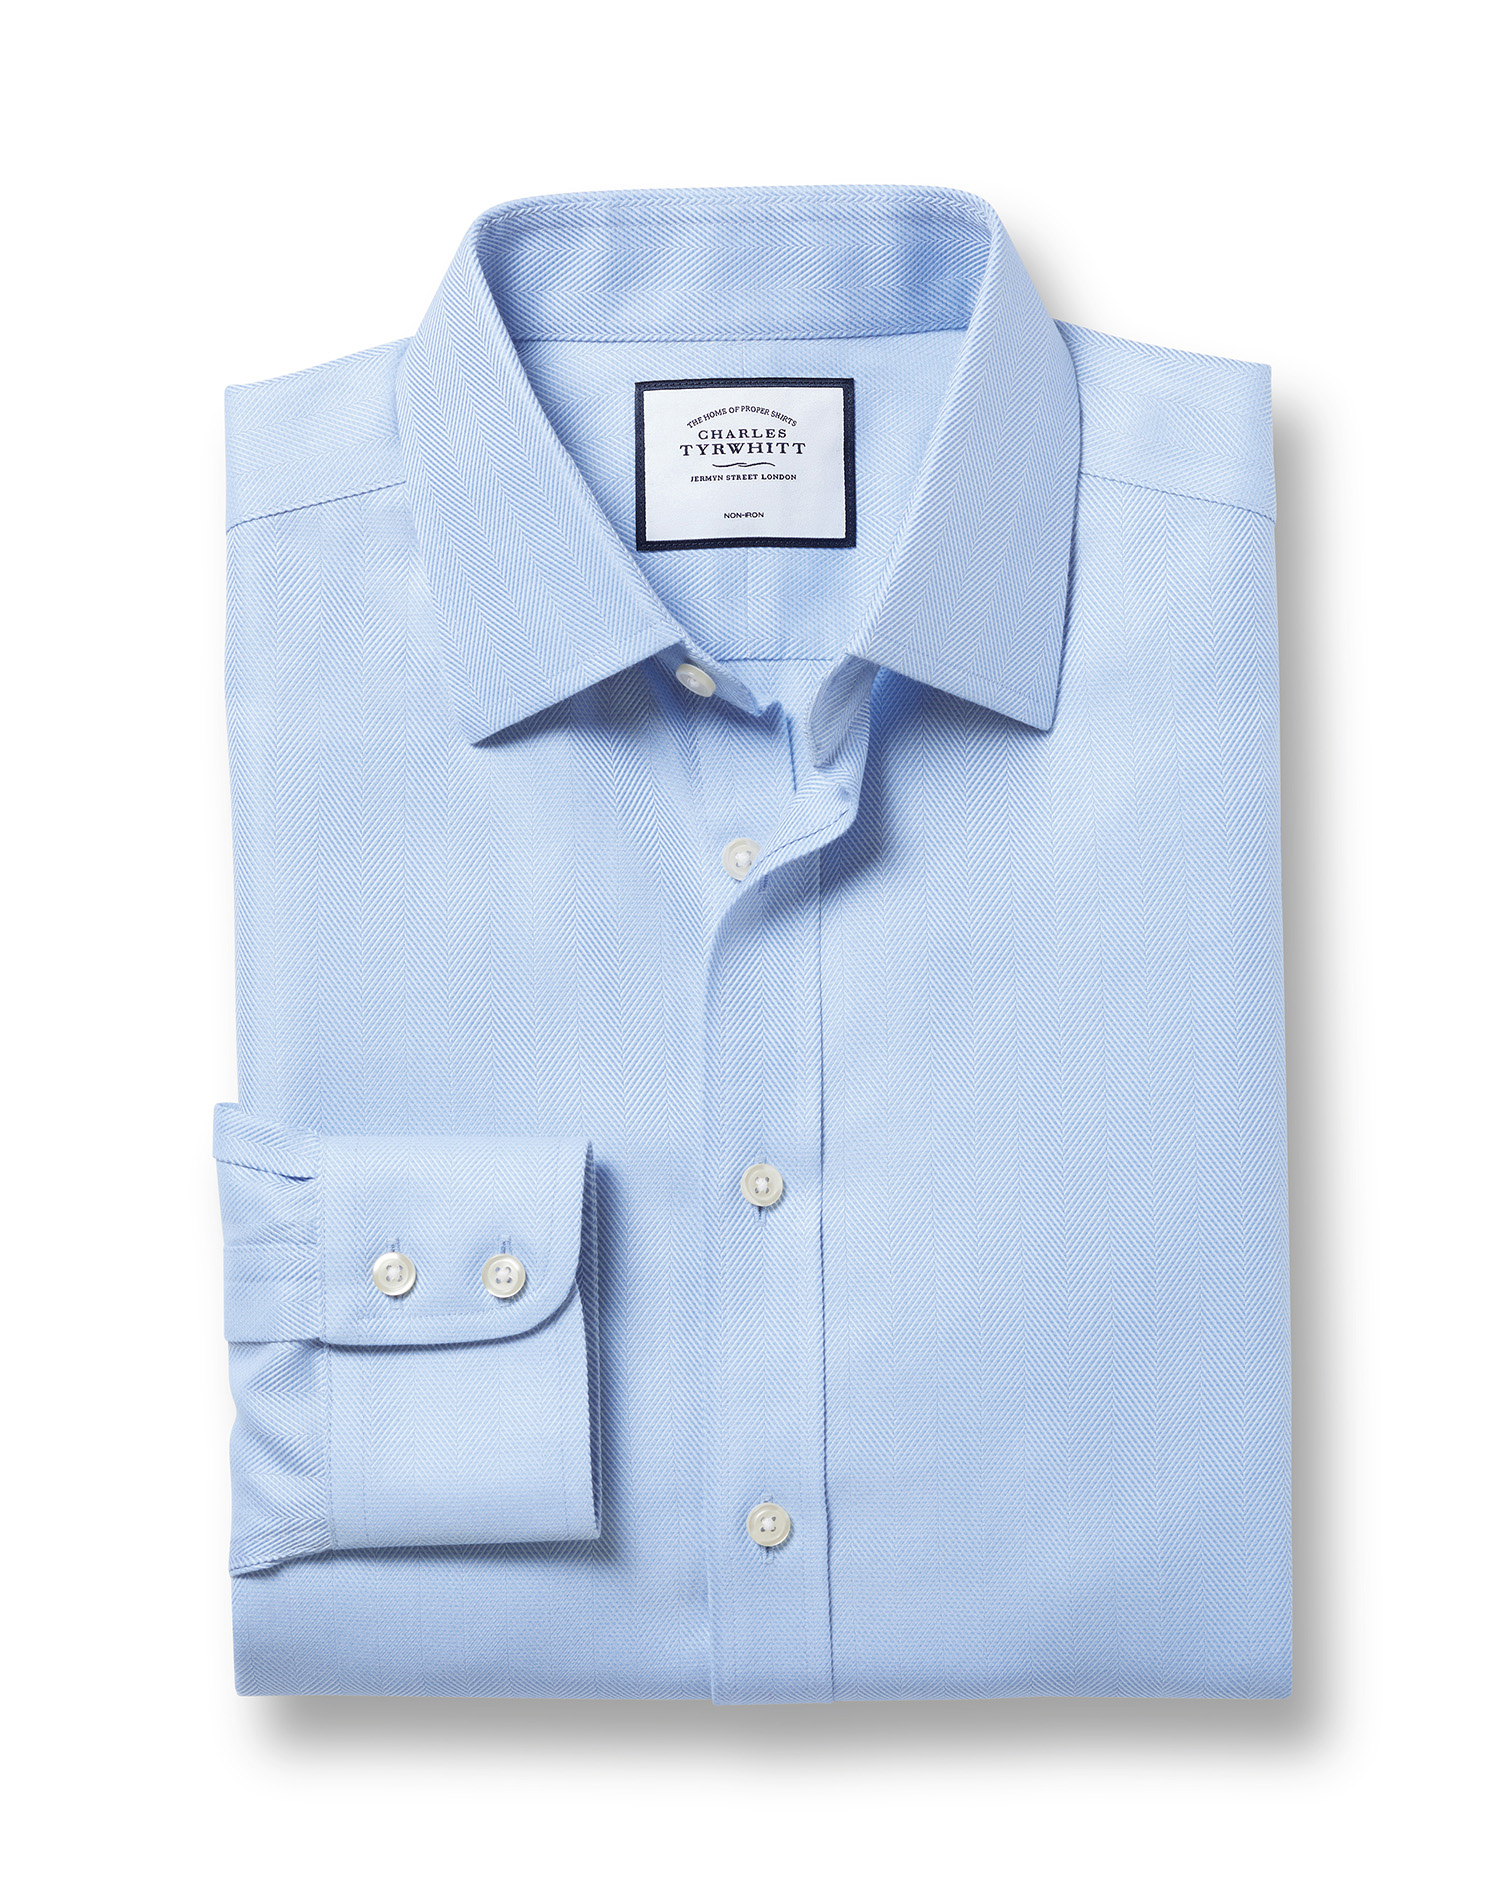 Classic Fit Non-Iron Sky Blue Herringbone Cotton Formal Shirt Single Cuff Size 16.5/35 by Charles Ty